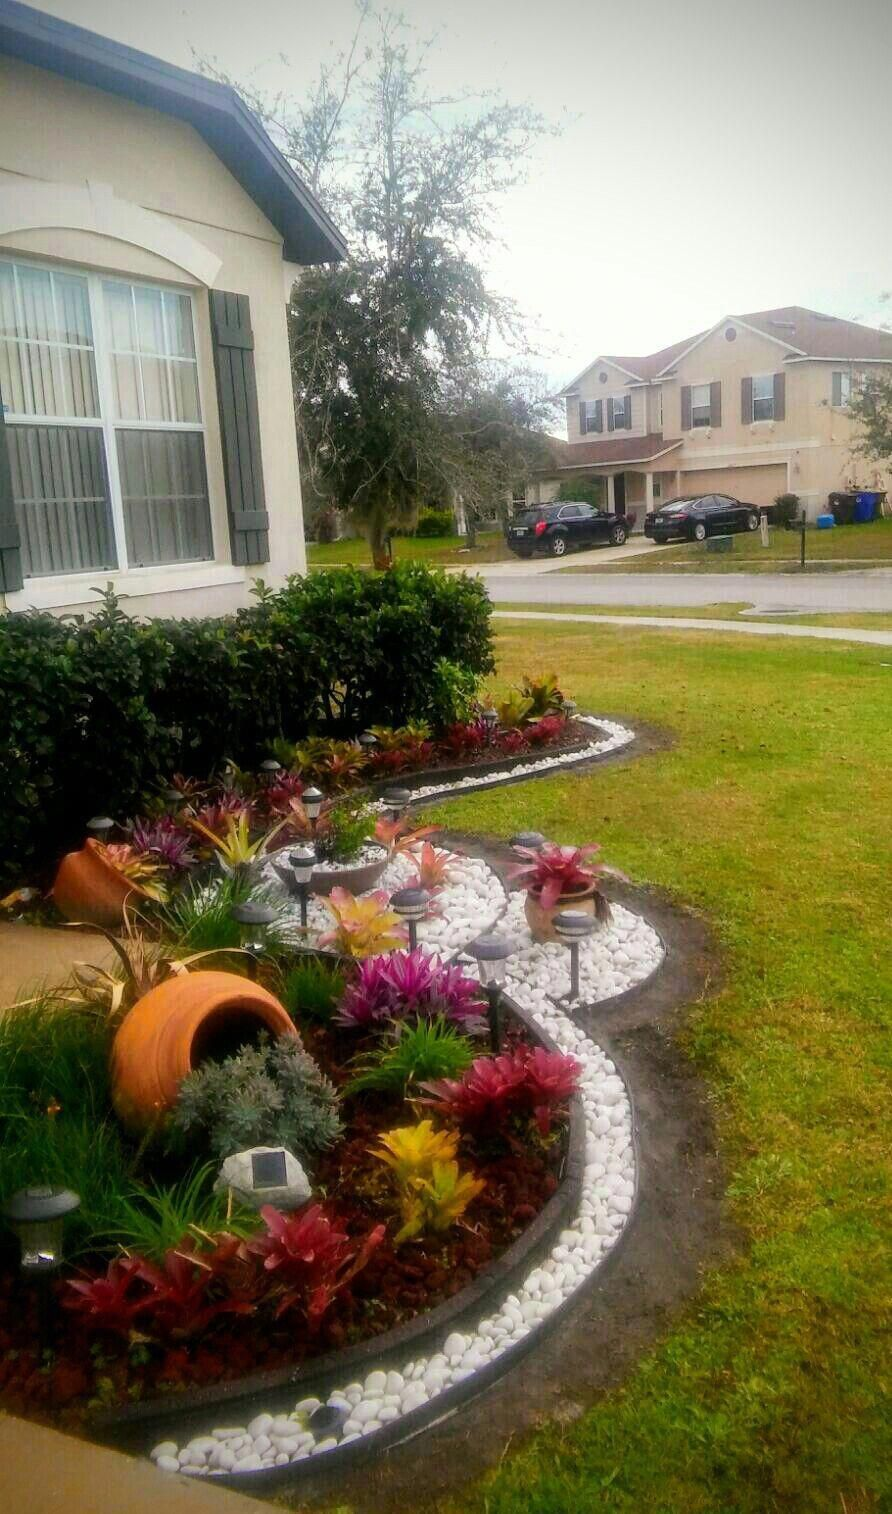 Stunning Front Yard Landscaping Ideas Can Make Your Residence A Lot More Attractive And Also Improve The Entire Look Of Your Kerti Otletek Kert Otletek Kertek